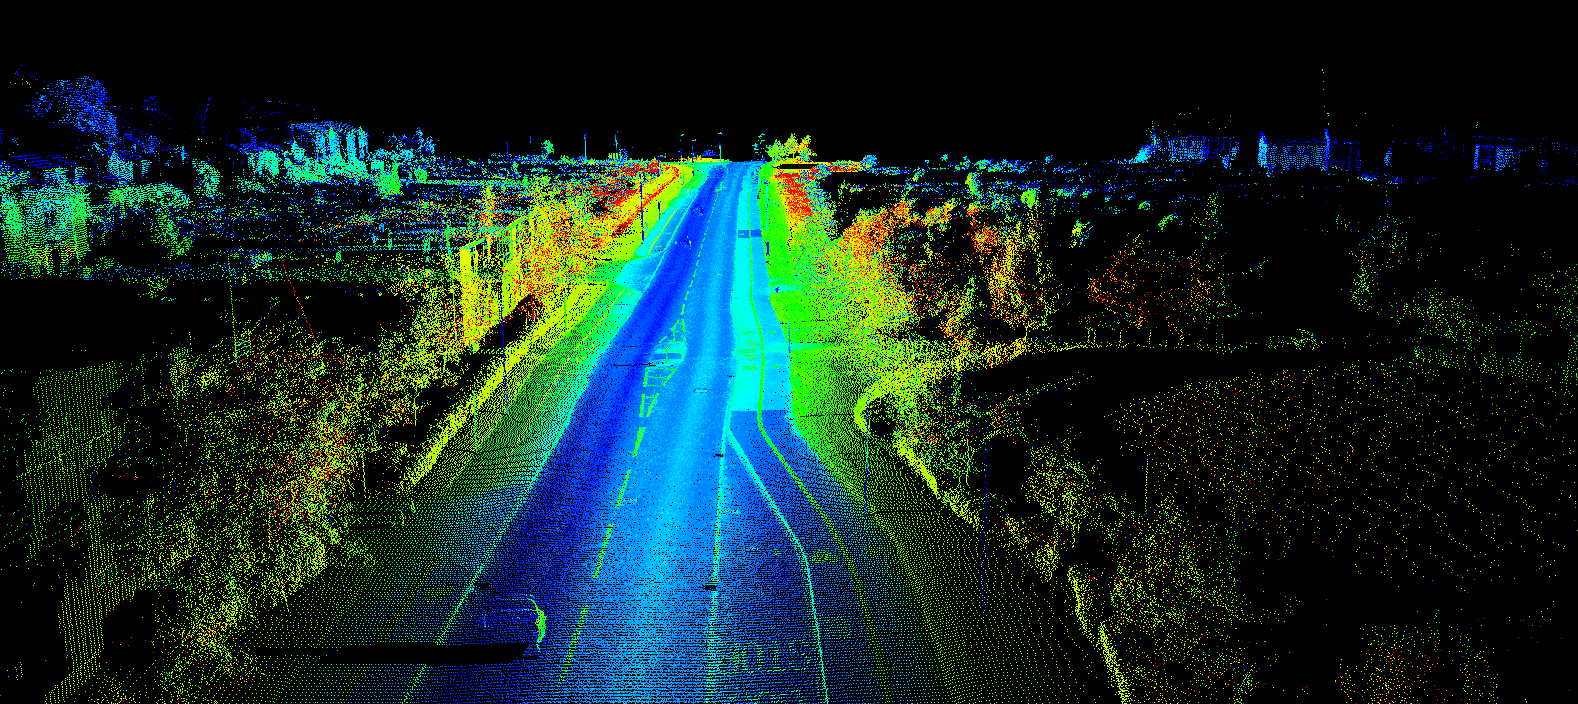 LiDAR is a method for measuring distances (ranging) by illuminating the target with laser light and measuring the reflection with a sensor